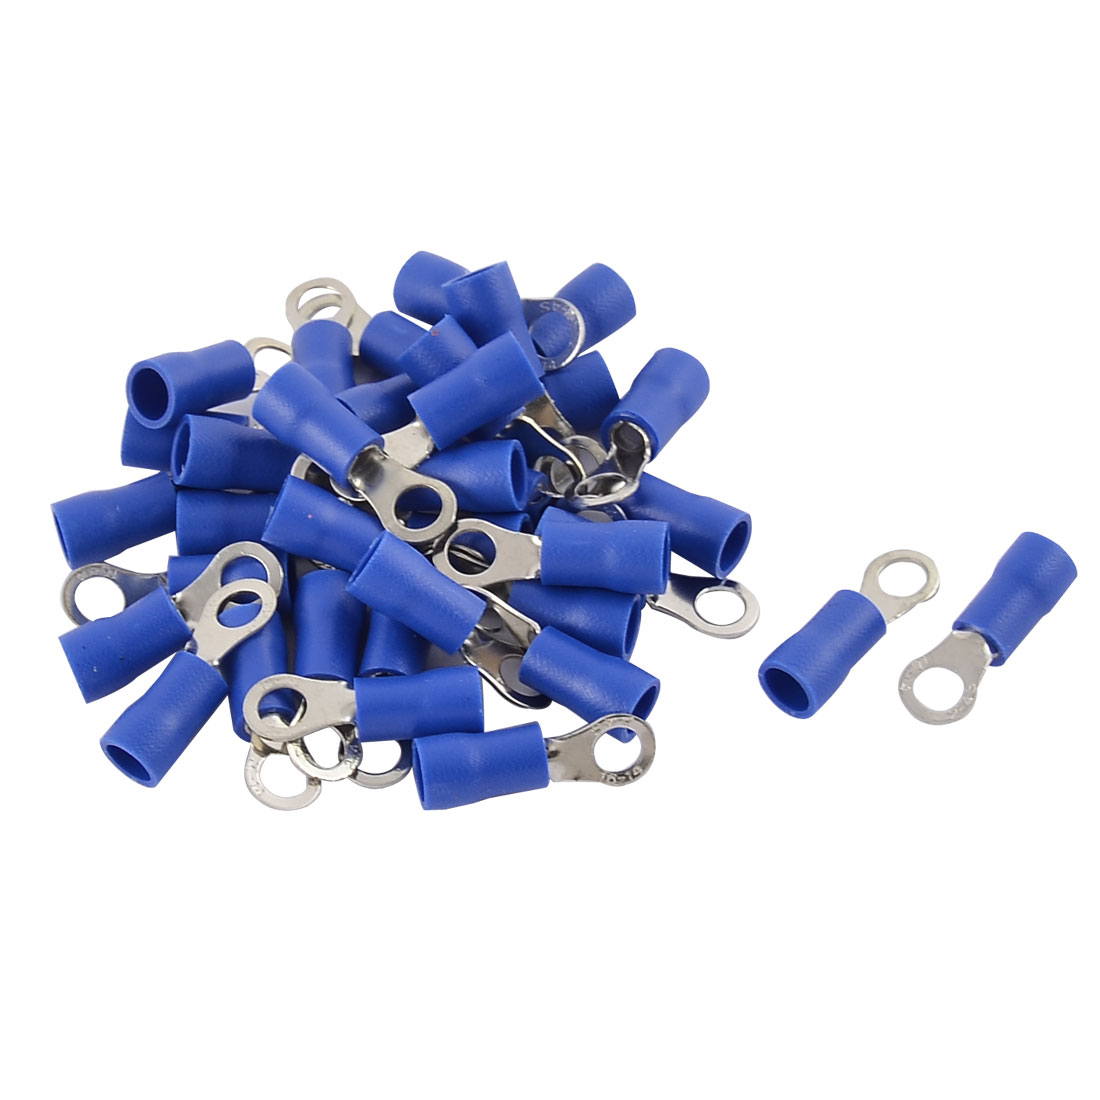 35pcs FX 2-4S 16-14 AWG Gauge Pre-insulated Ring Terminals Connector Blue